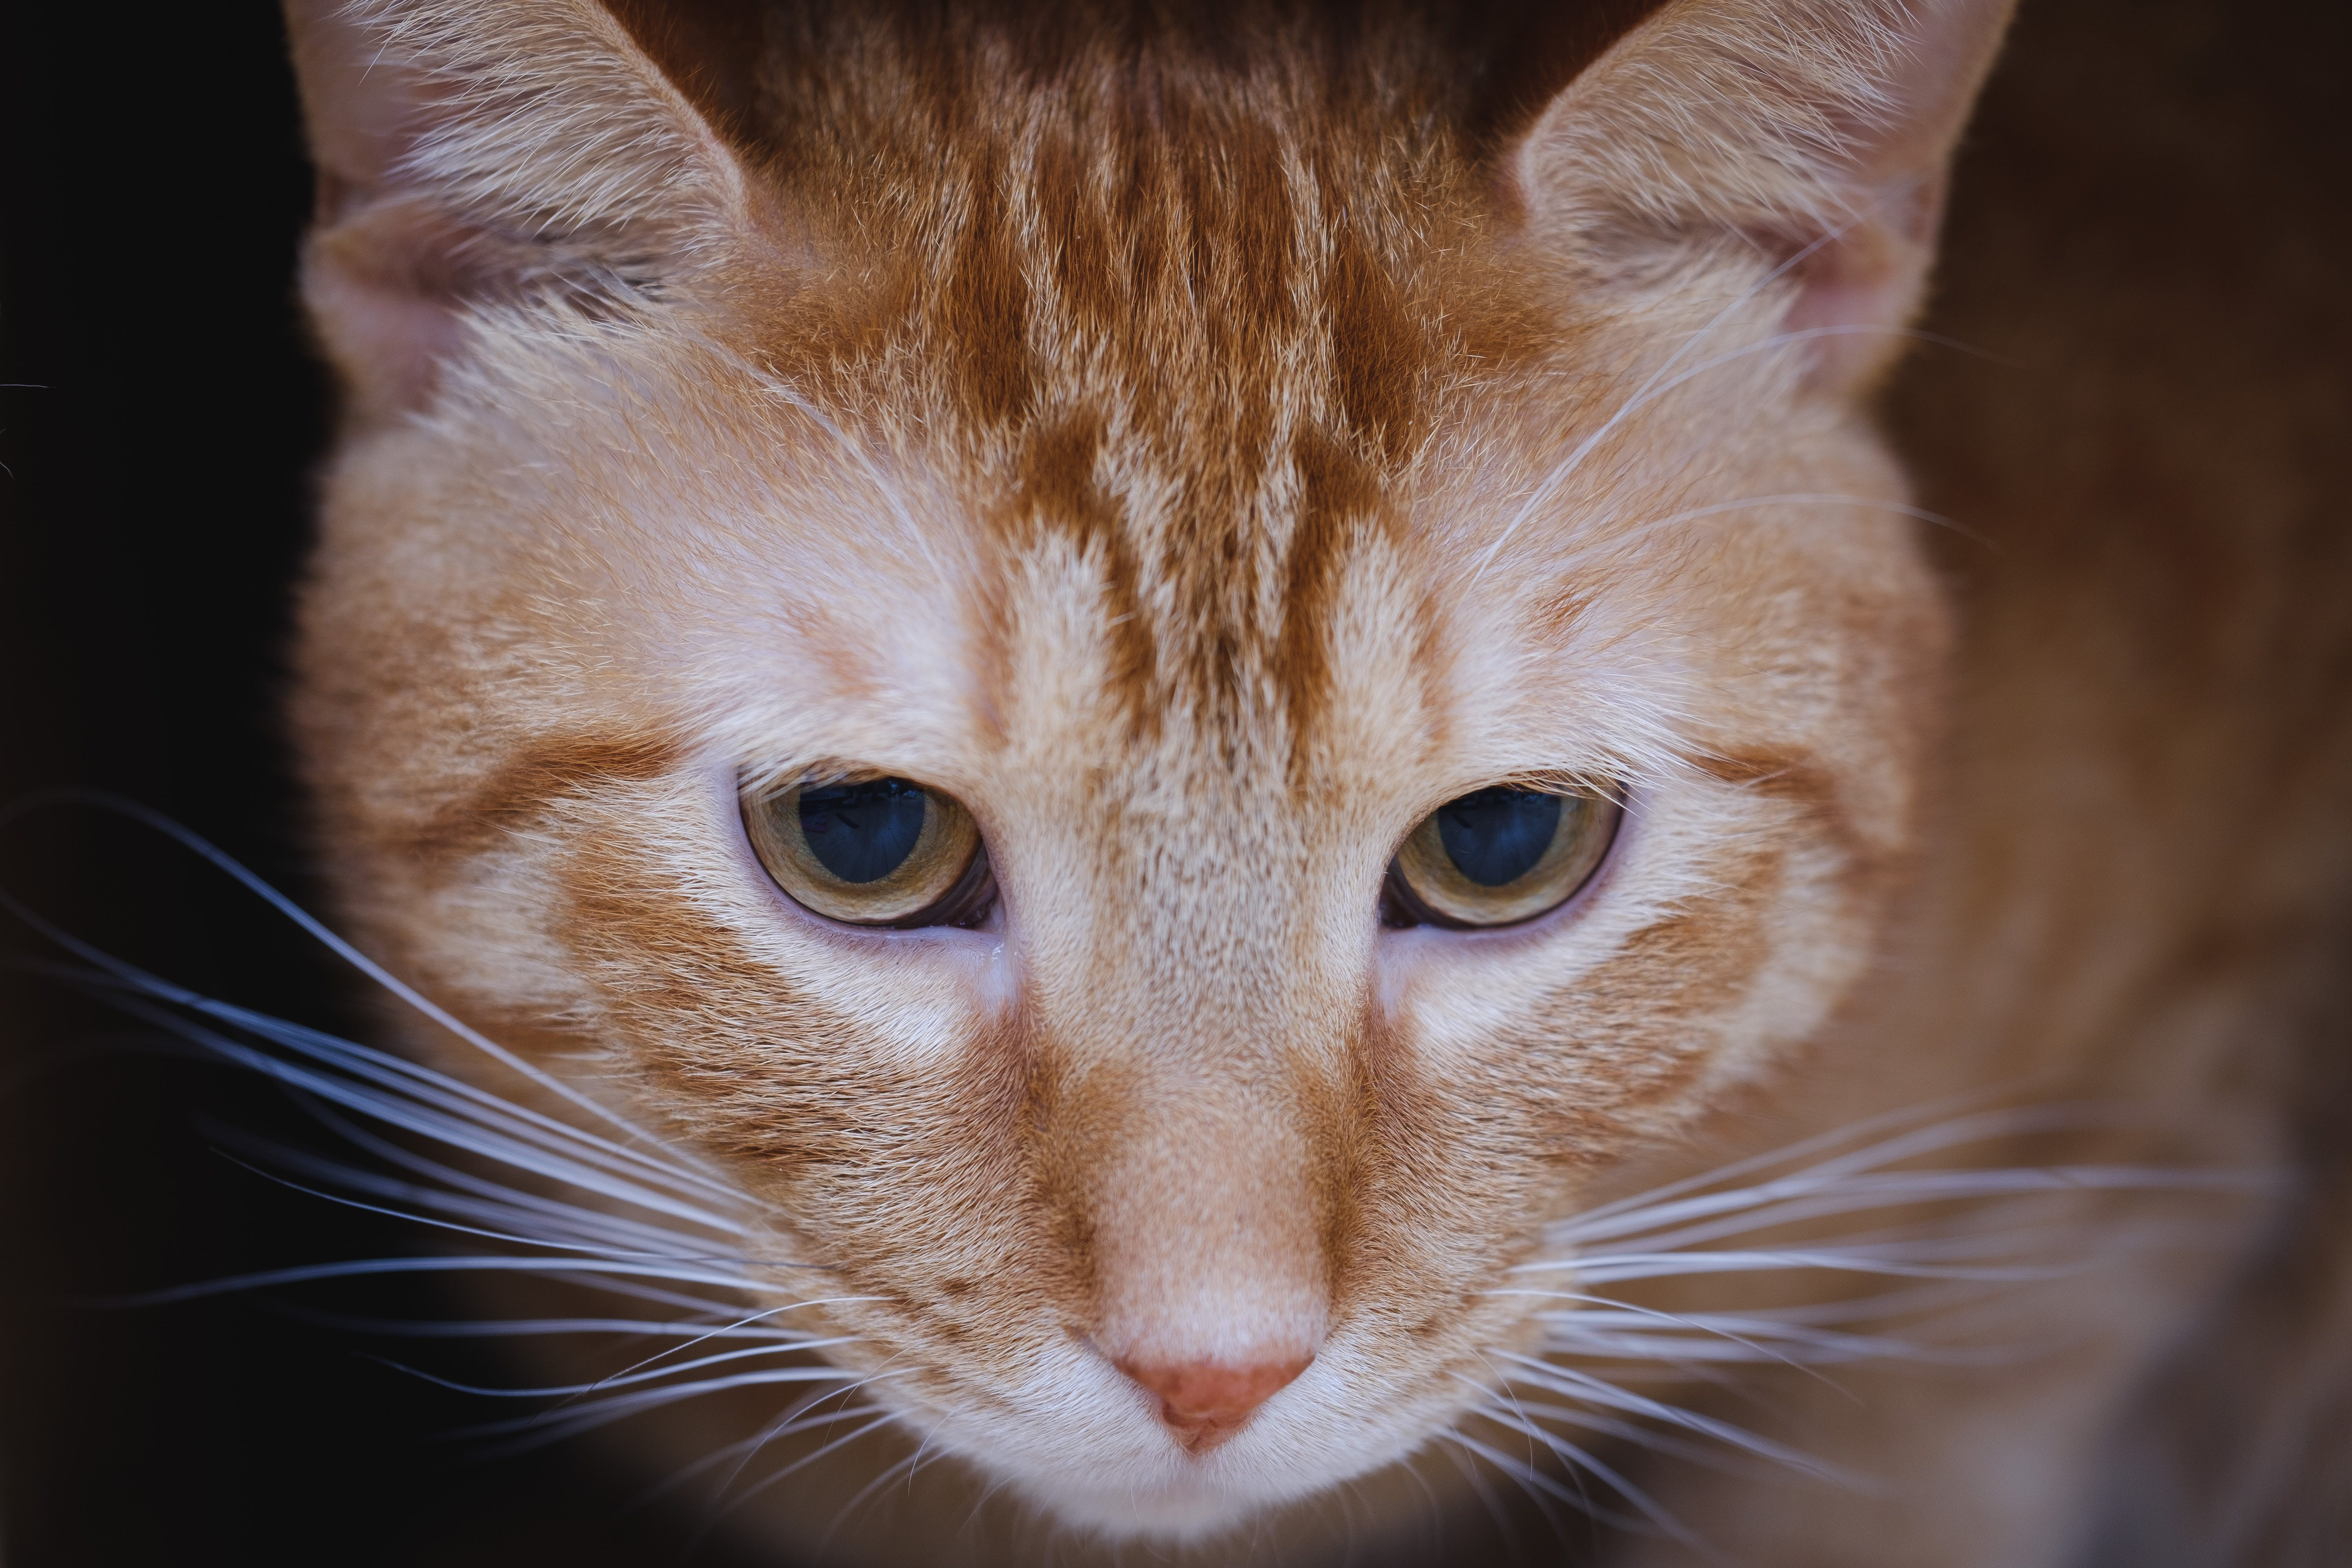 Gratis stockfoto met aanbiddelijk, beest, close-up, felidae